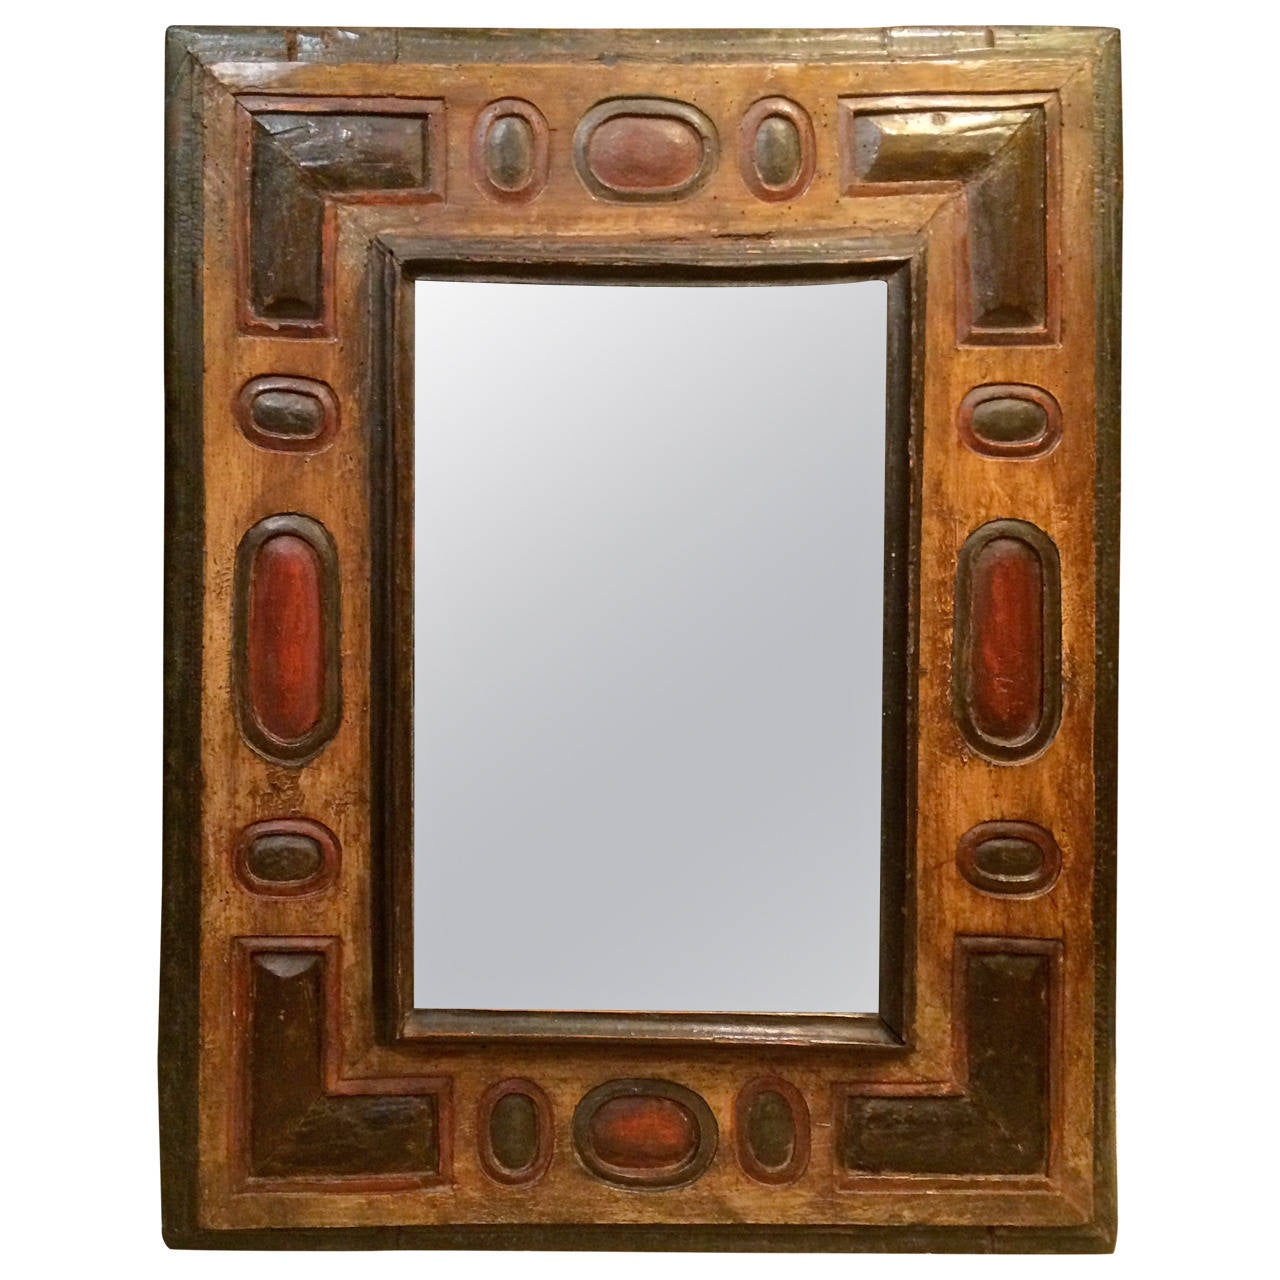 Italian baroque mirror at 1stdibs for Baroque mirror